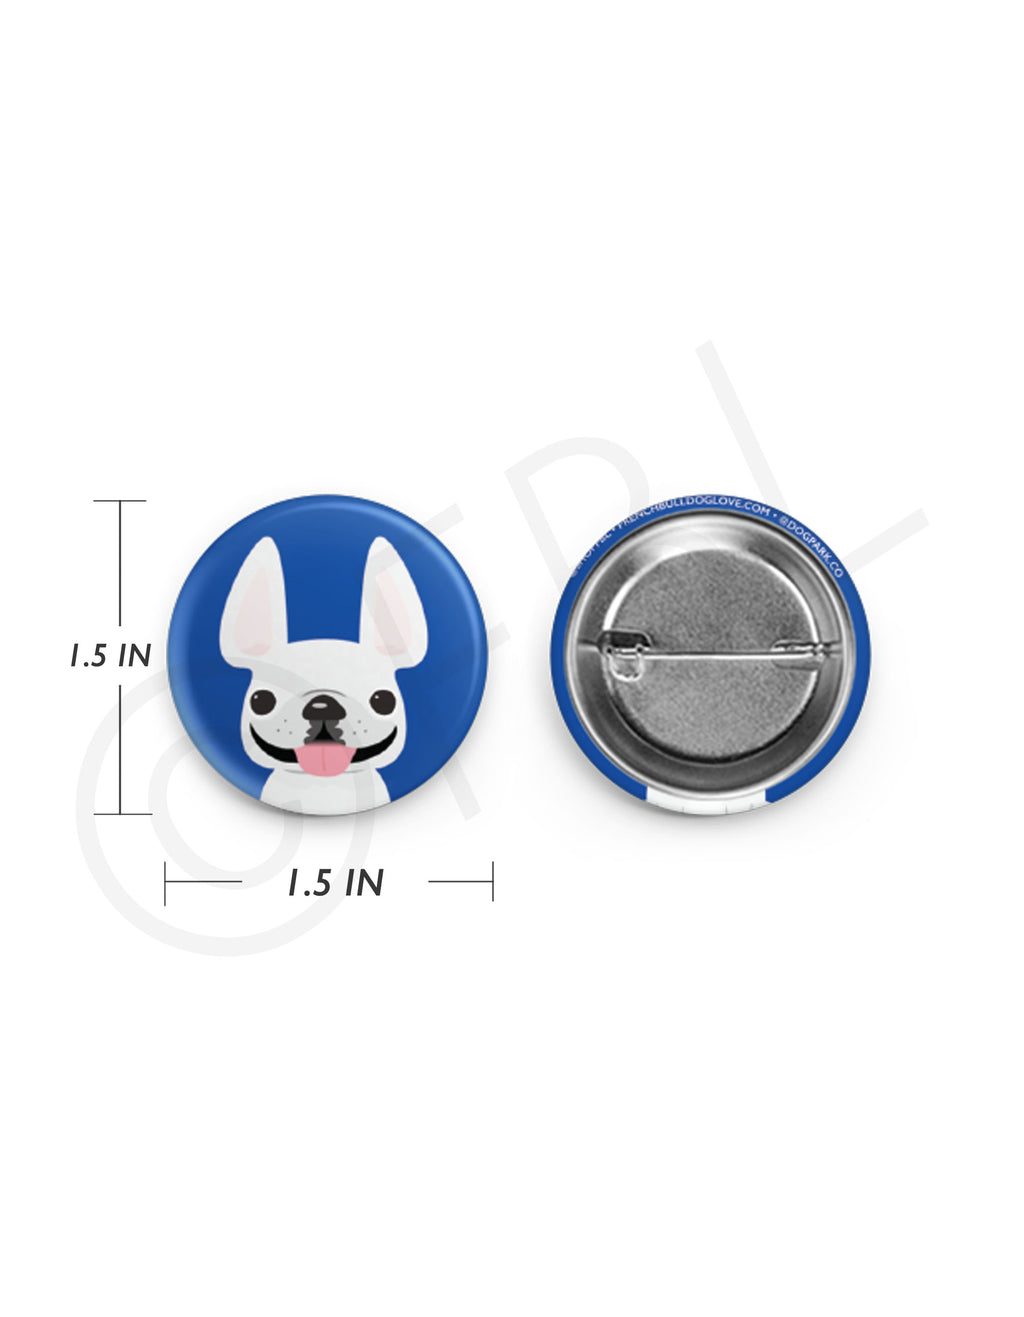 Mini French Bulldog Button - 1.5 inch - White